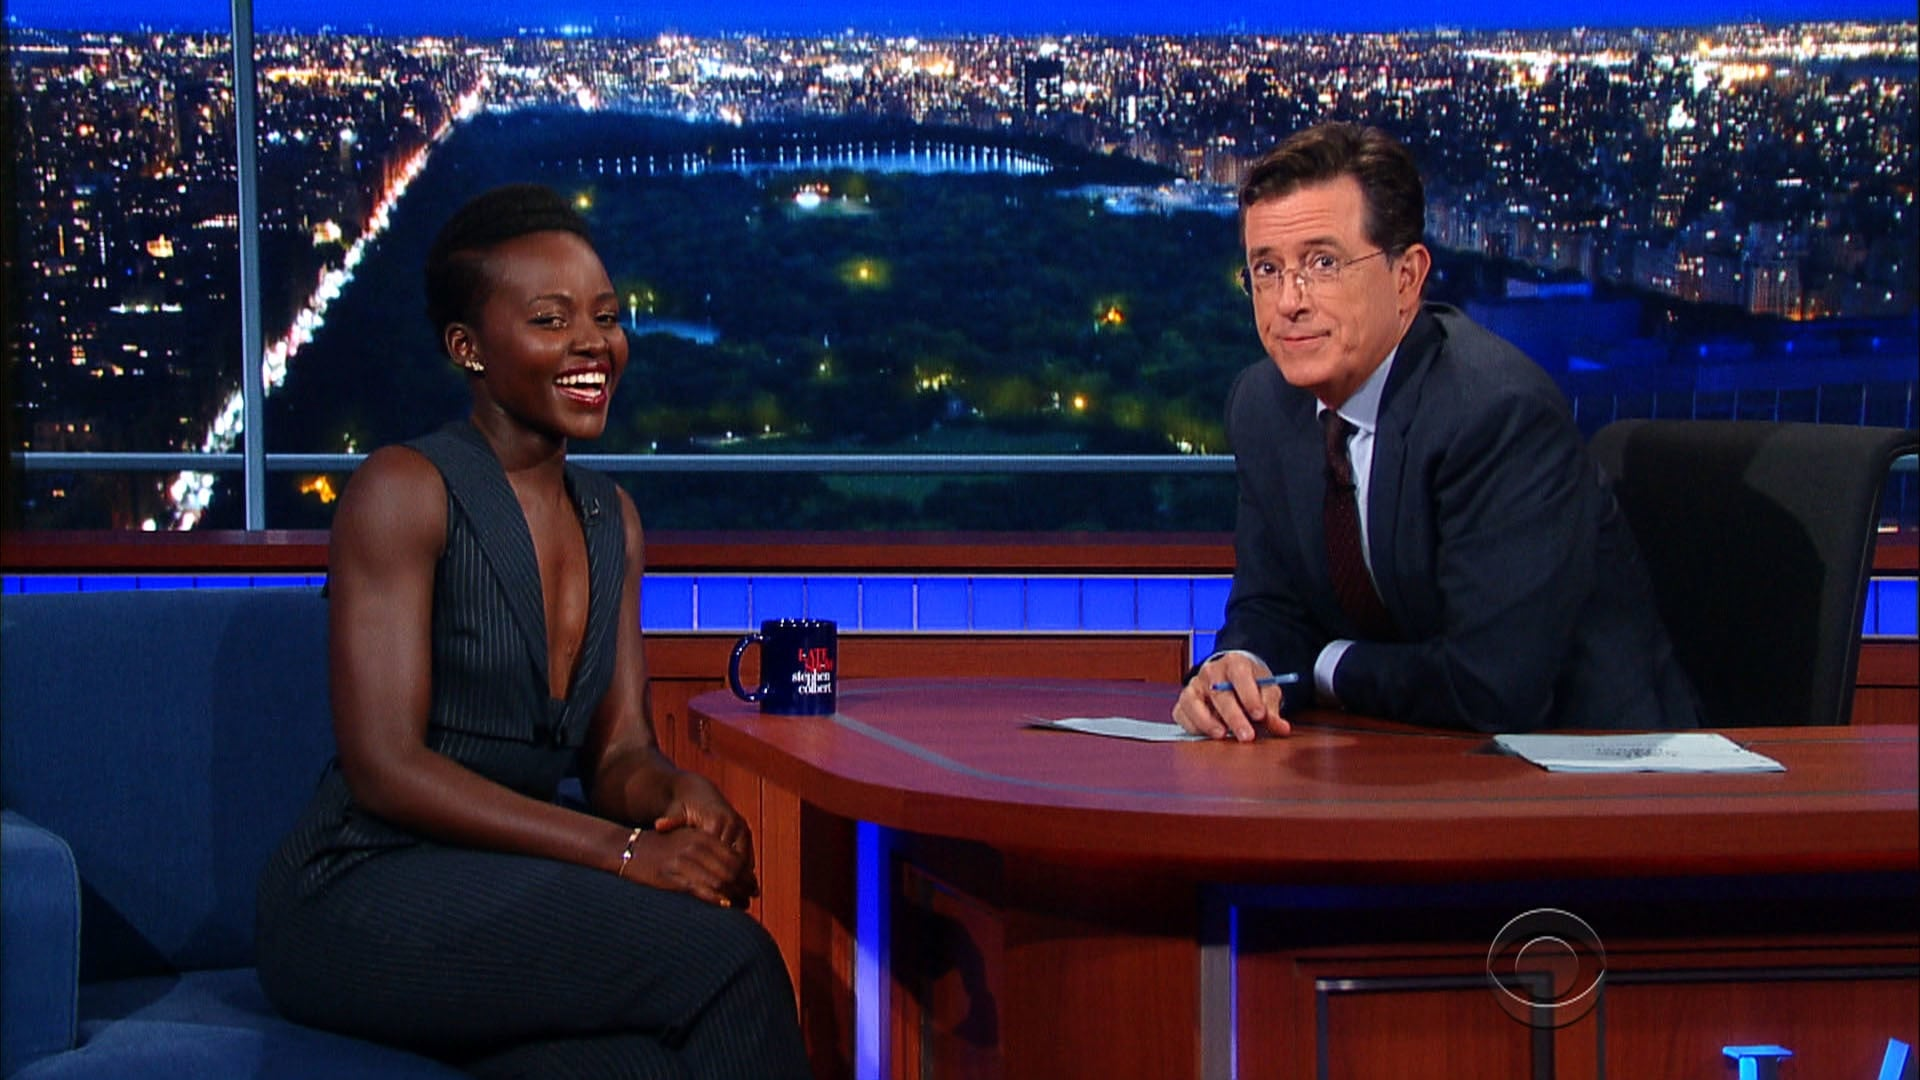 The Late Show with Stephen Colbert Season 1 :Episode 9  Lupita Nyong'o, Sen. Bernie Sanders, An American in Paris (Christopher Wheeldon, Robert Fairchild, Leanne Cope)